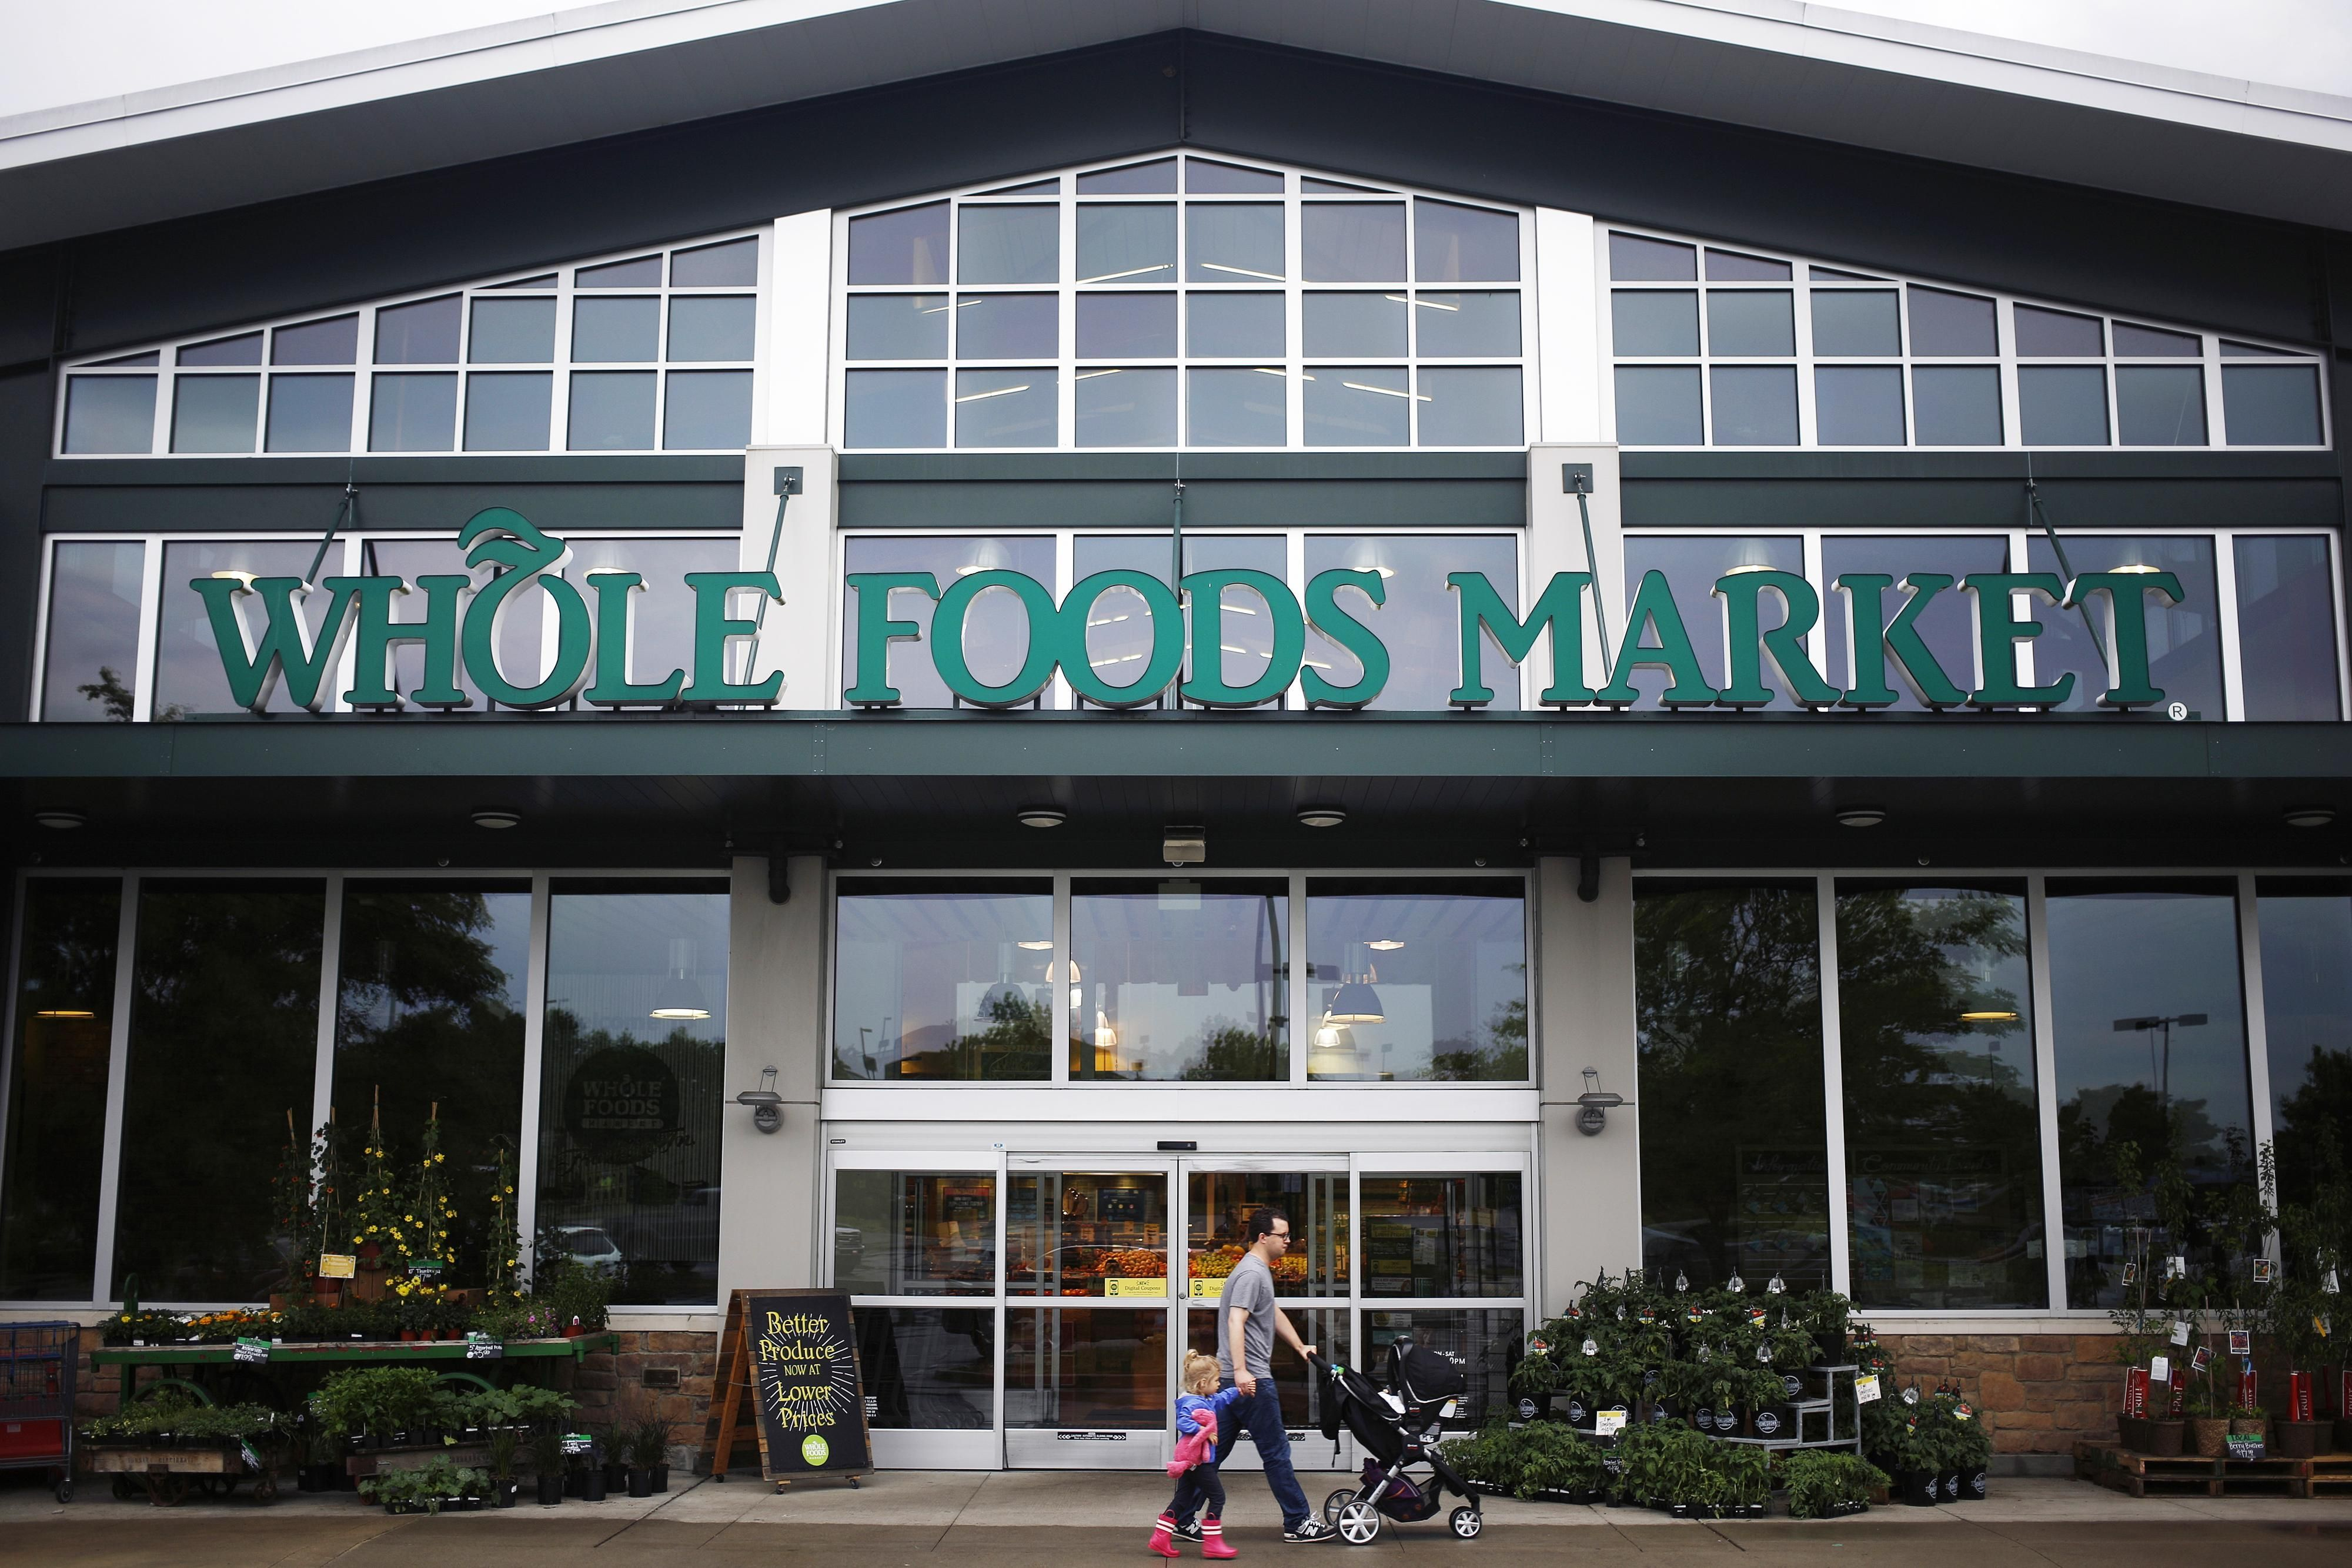 Fda warns whole foods of serious violations after